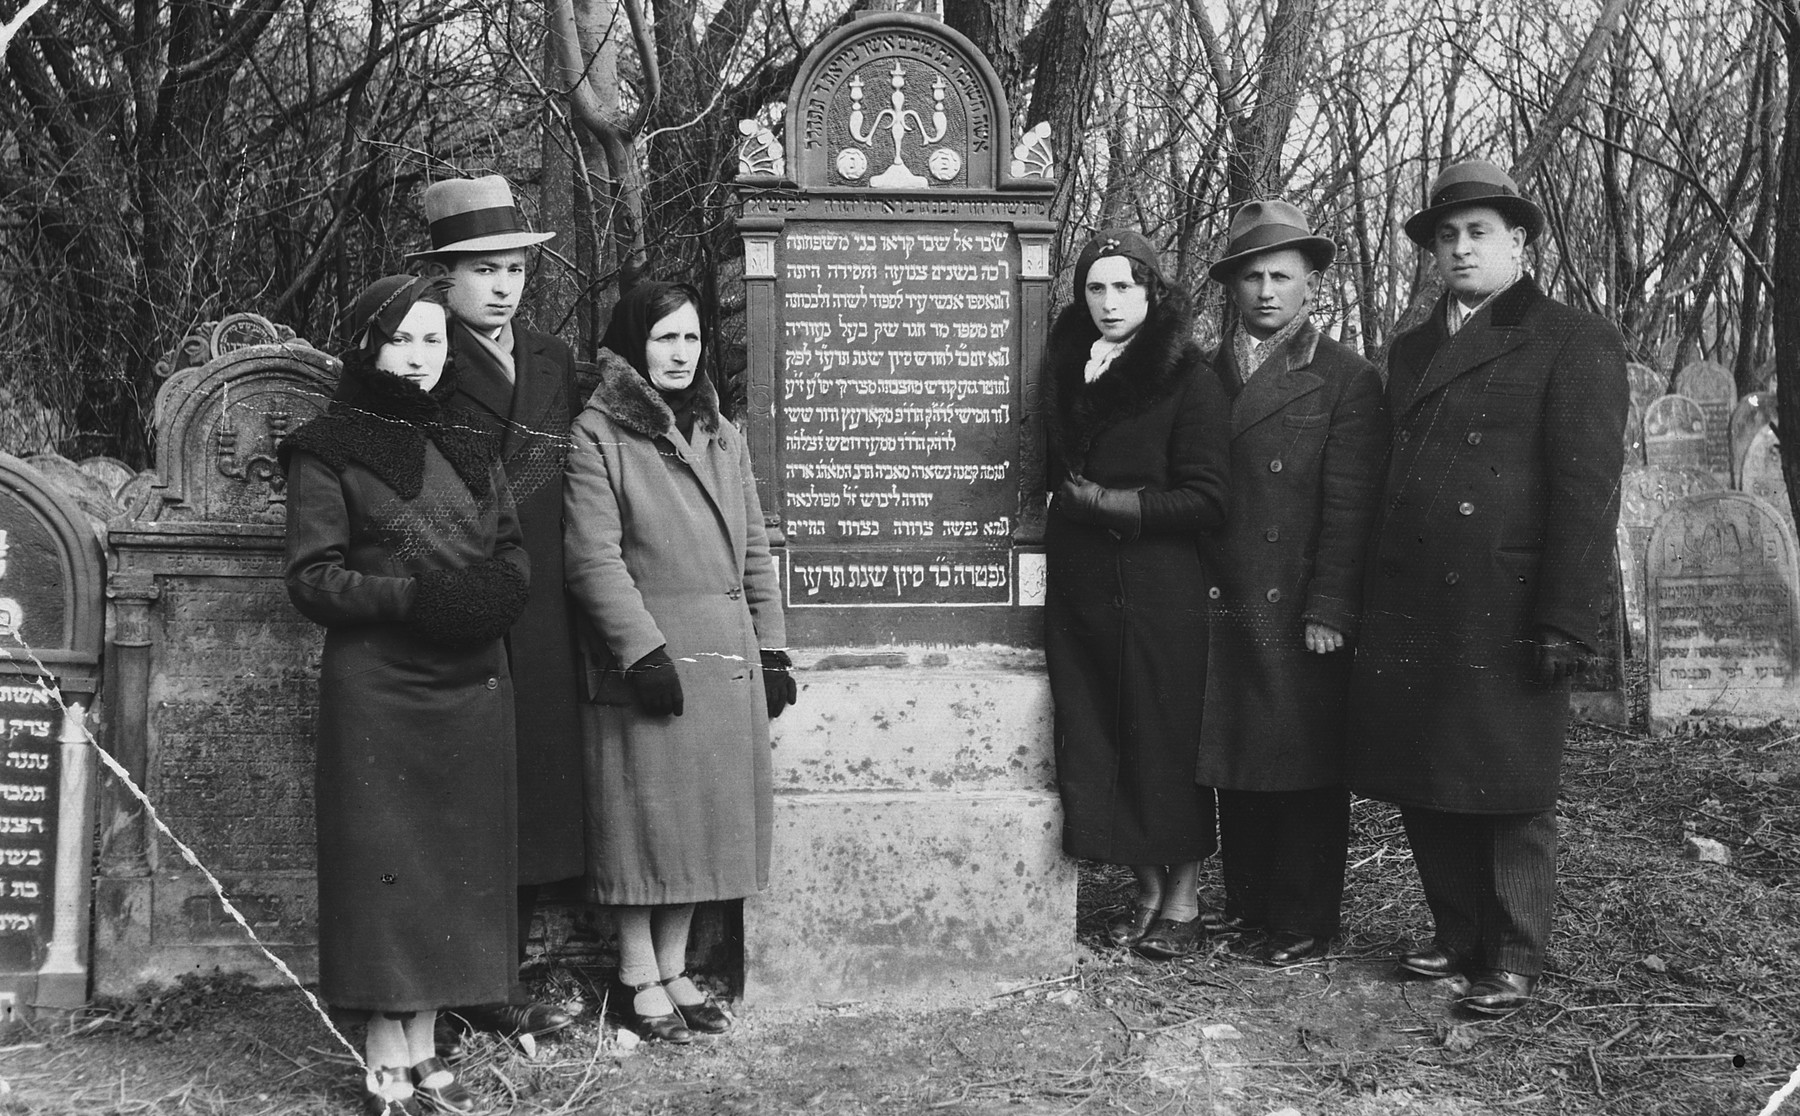 A Polish-Jewish family poses by the grave of its mother.  Pictured from left to right are Freda Frucht, Avigdor Frucht, Malka Toren. Bela Perec, Isaac Perec and Szyja Frucht.